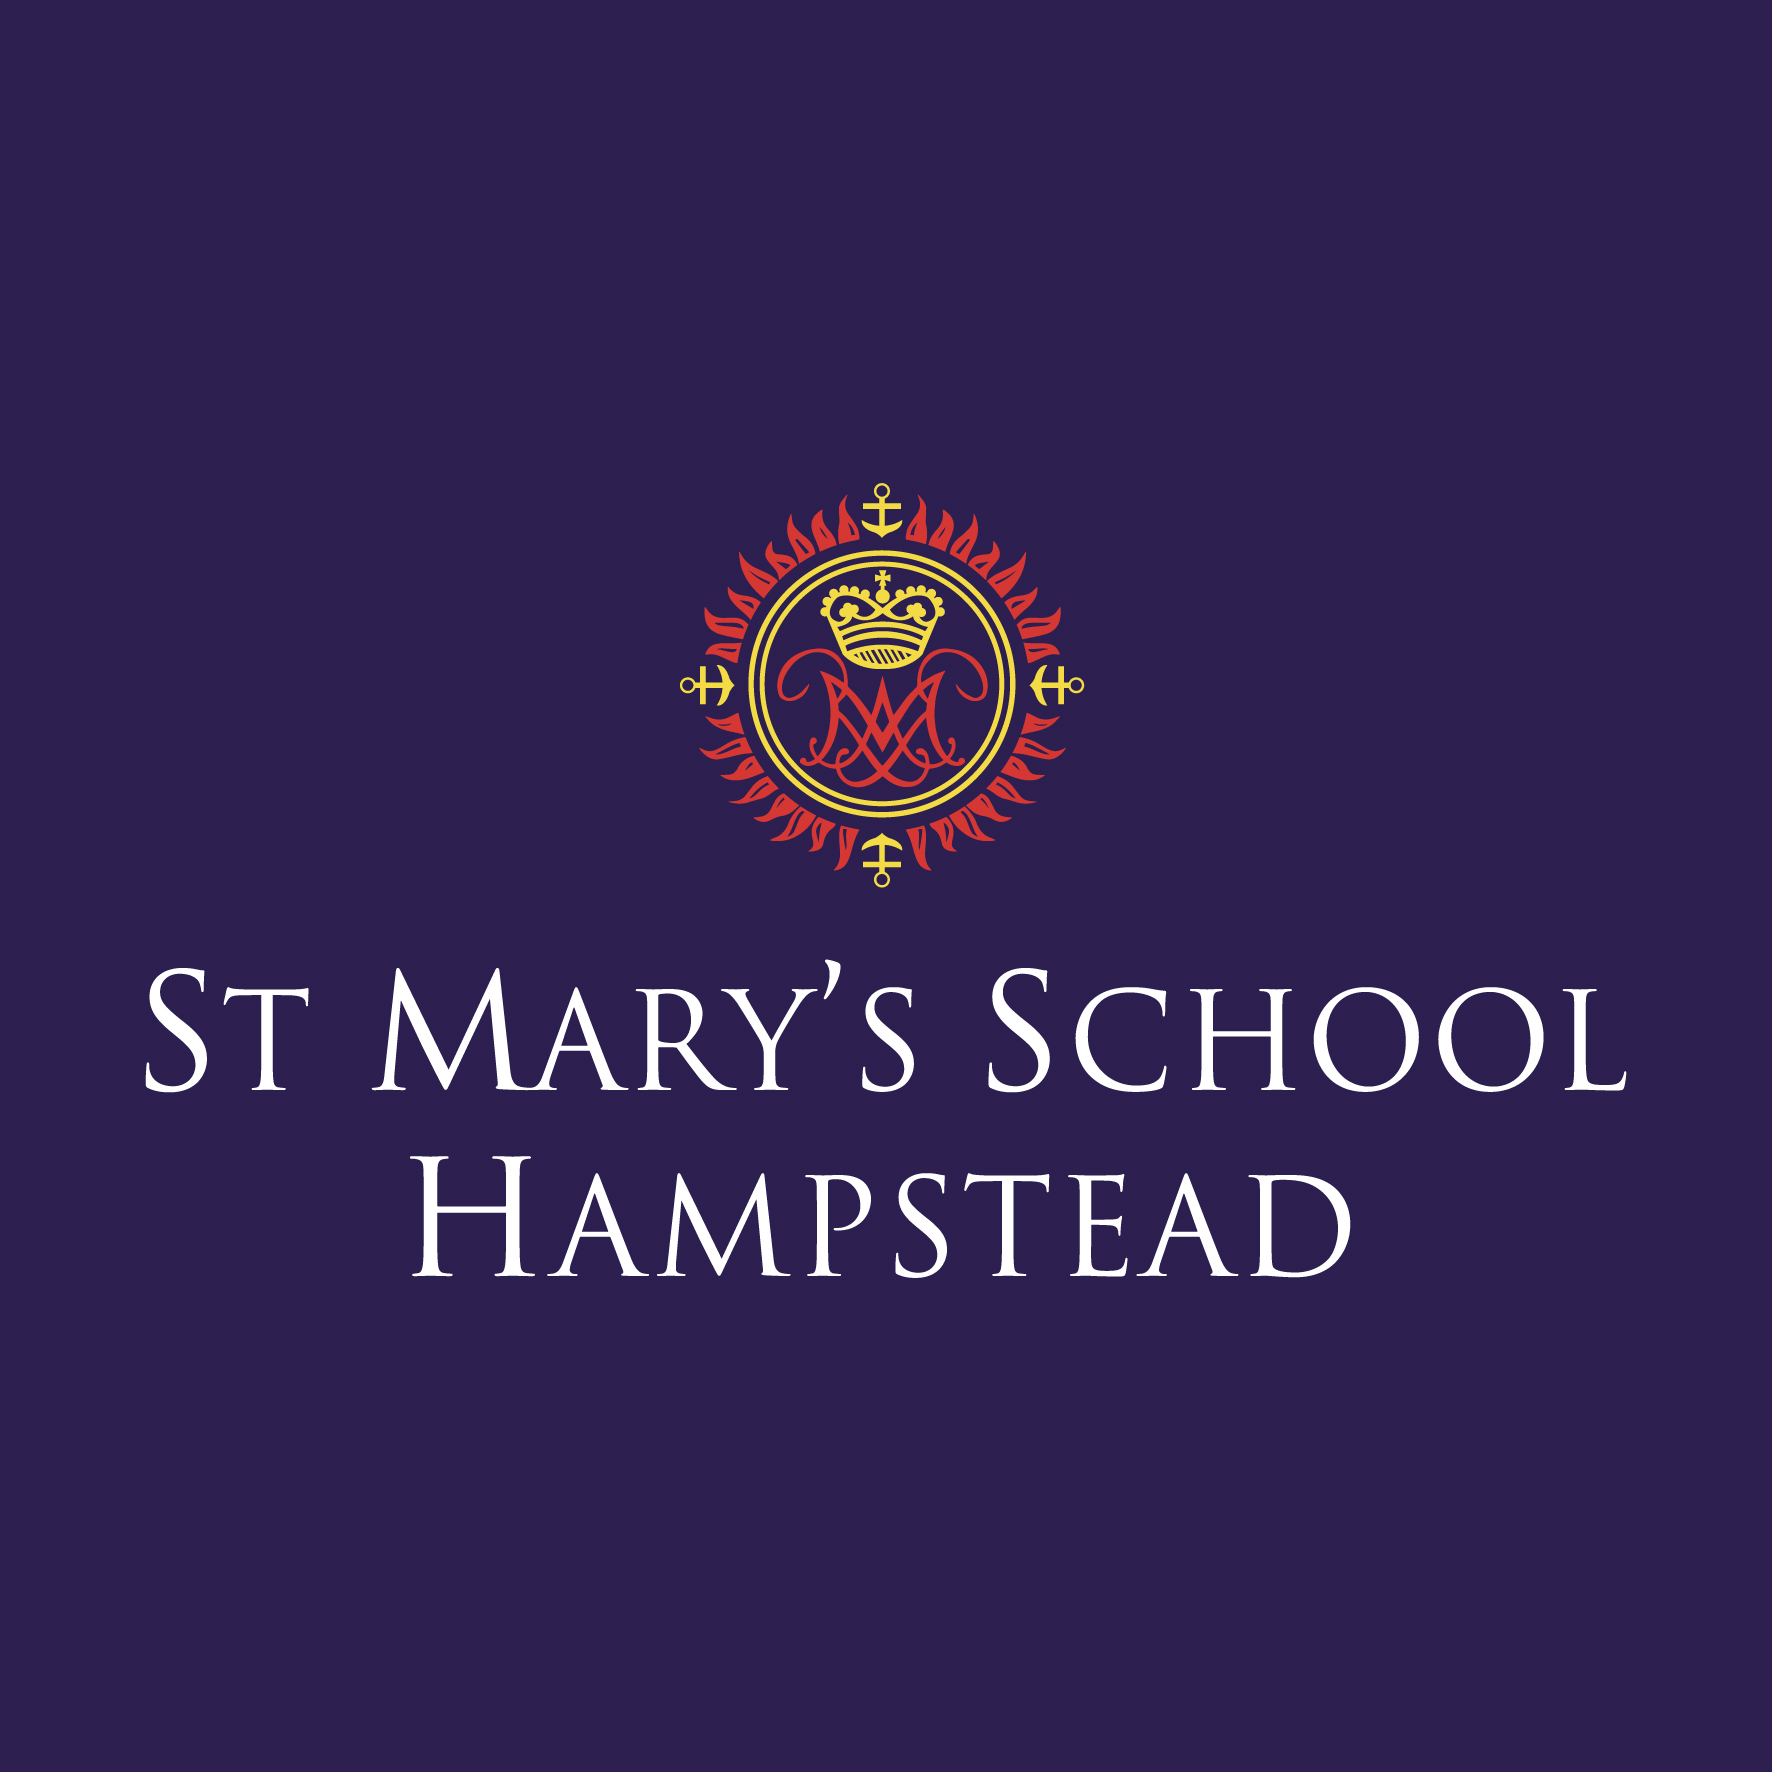 St Mary's School Hampstead